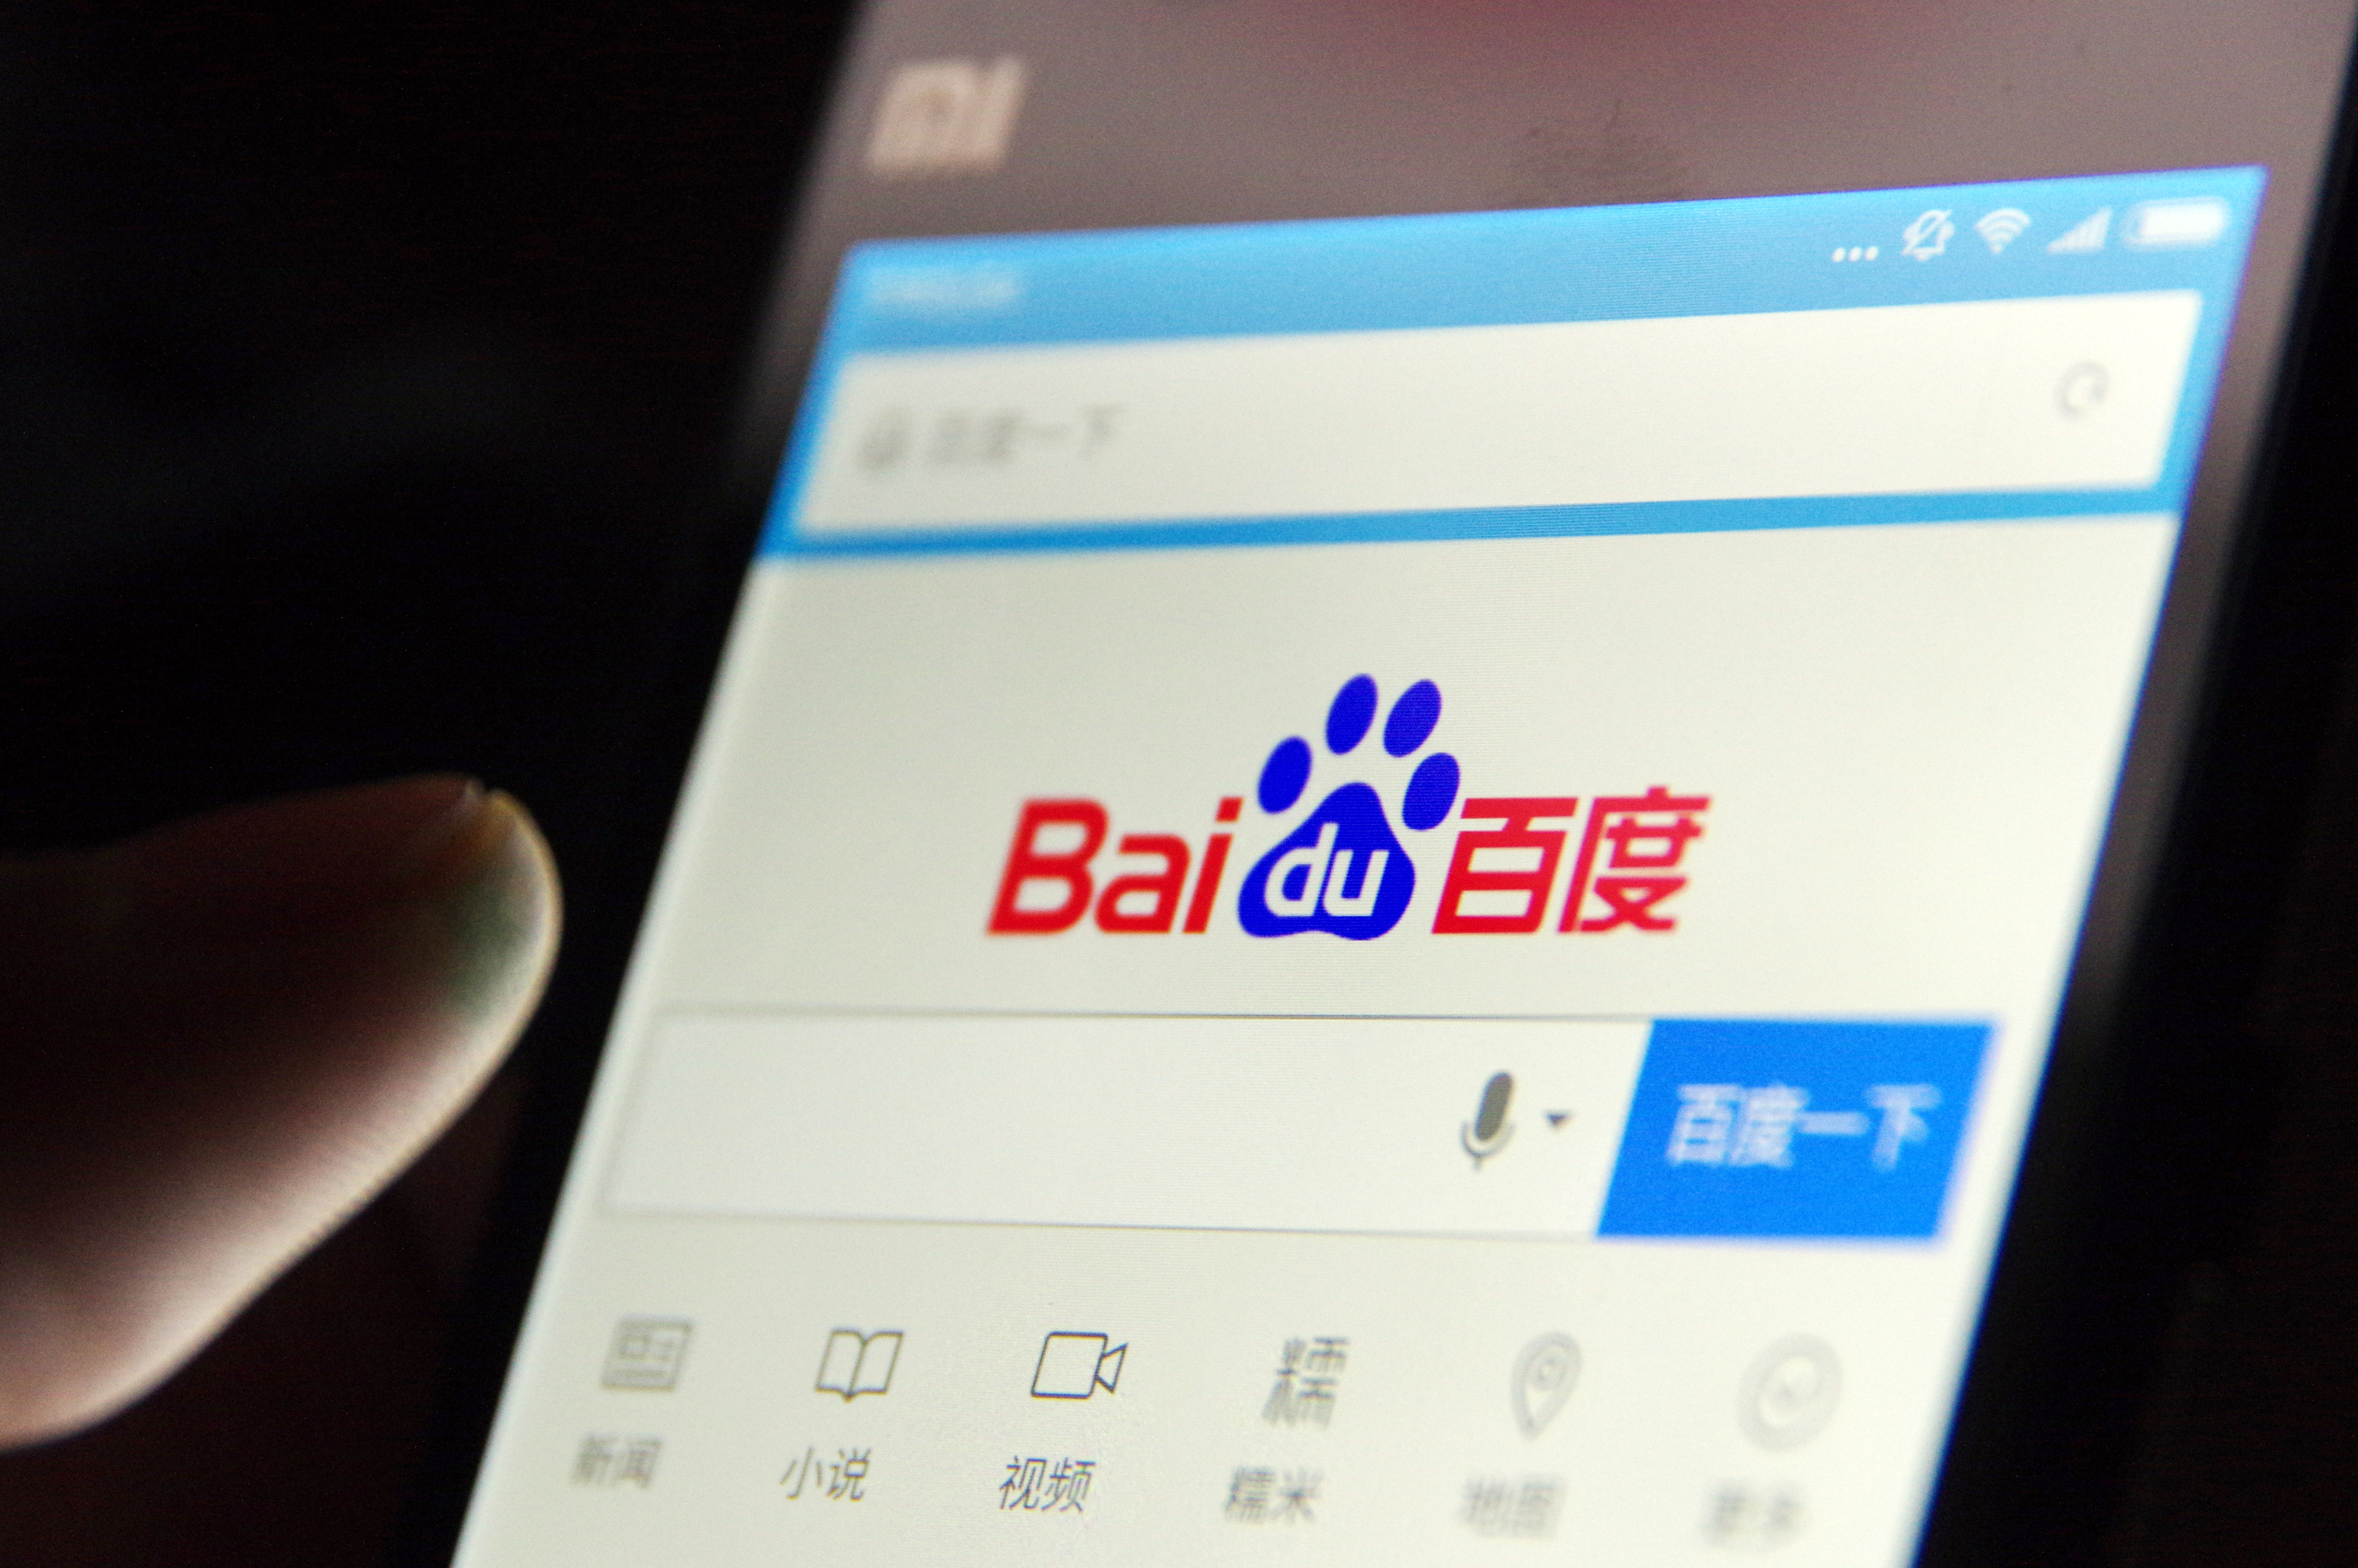 A local Chinese resident uses online search engine Baidu on his smartphone in Jinan, China, May 2, 2016